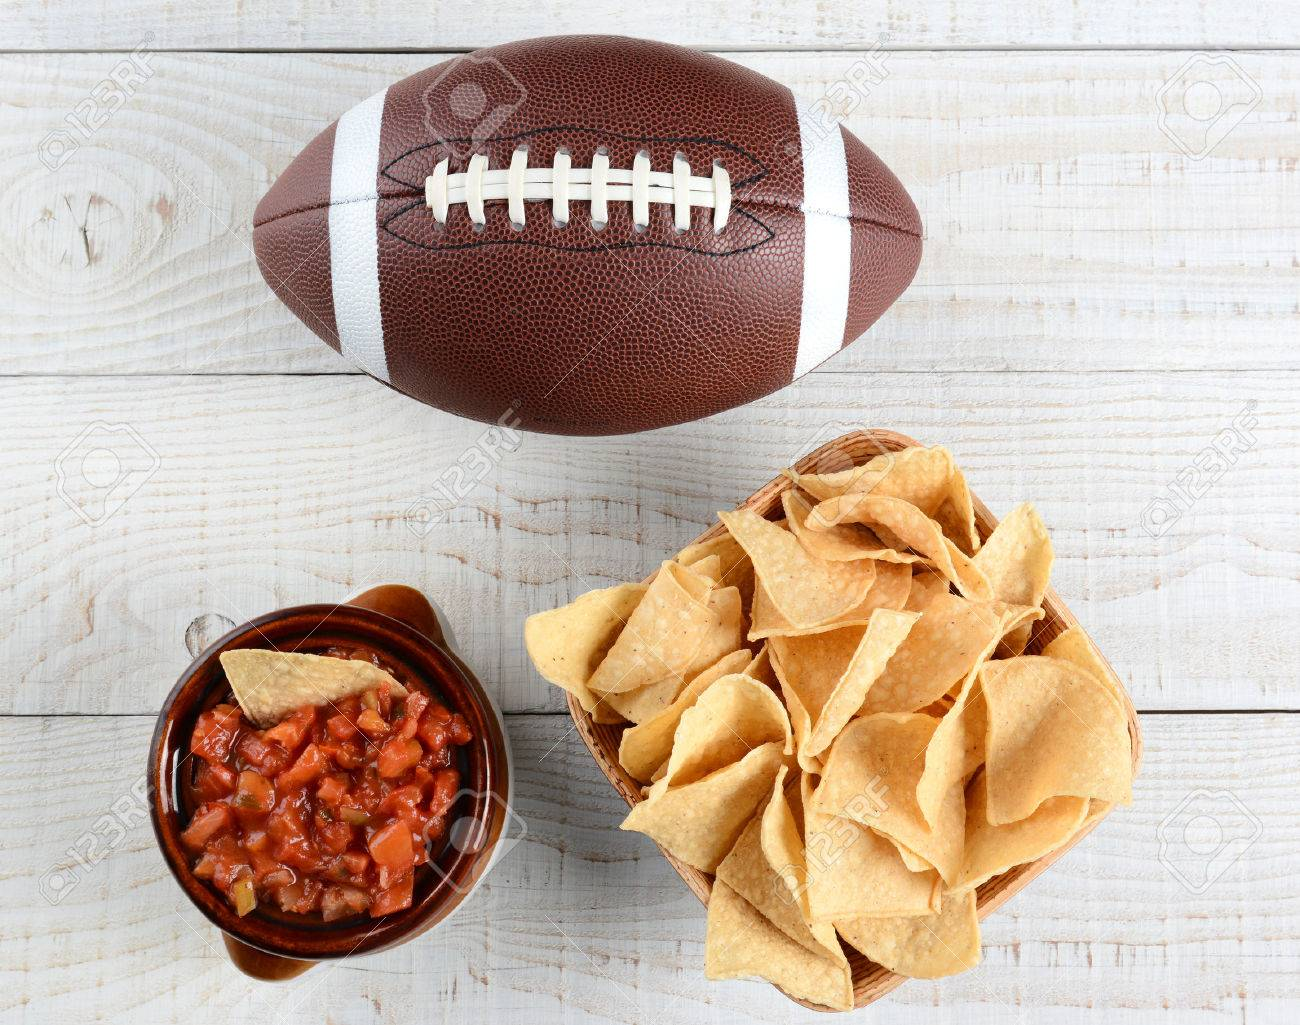 High angle shot of a bowl of corn chips a crock full of fresh salsa and an American football on a whitewashed rustic wood table. Horizontal format. - 35329370